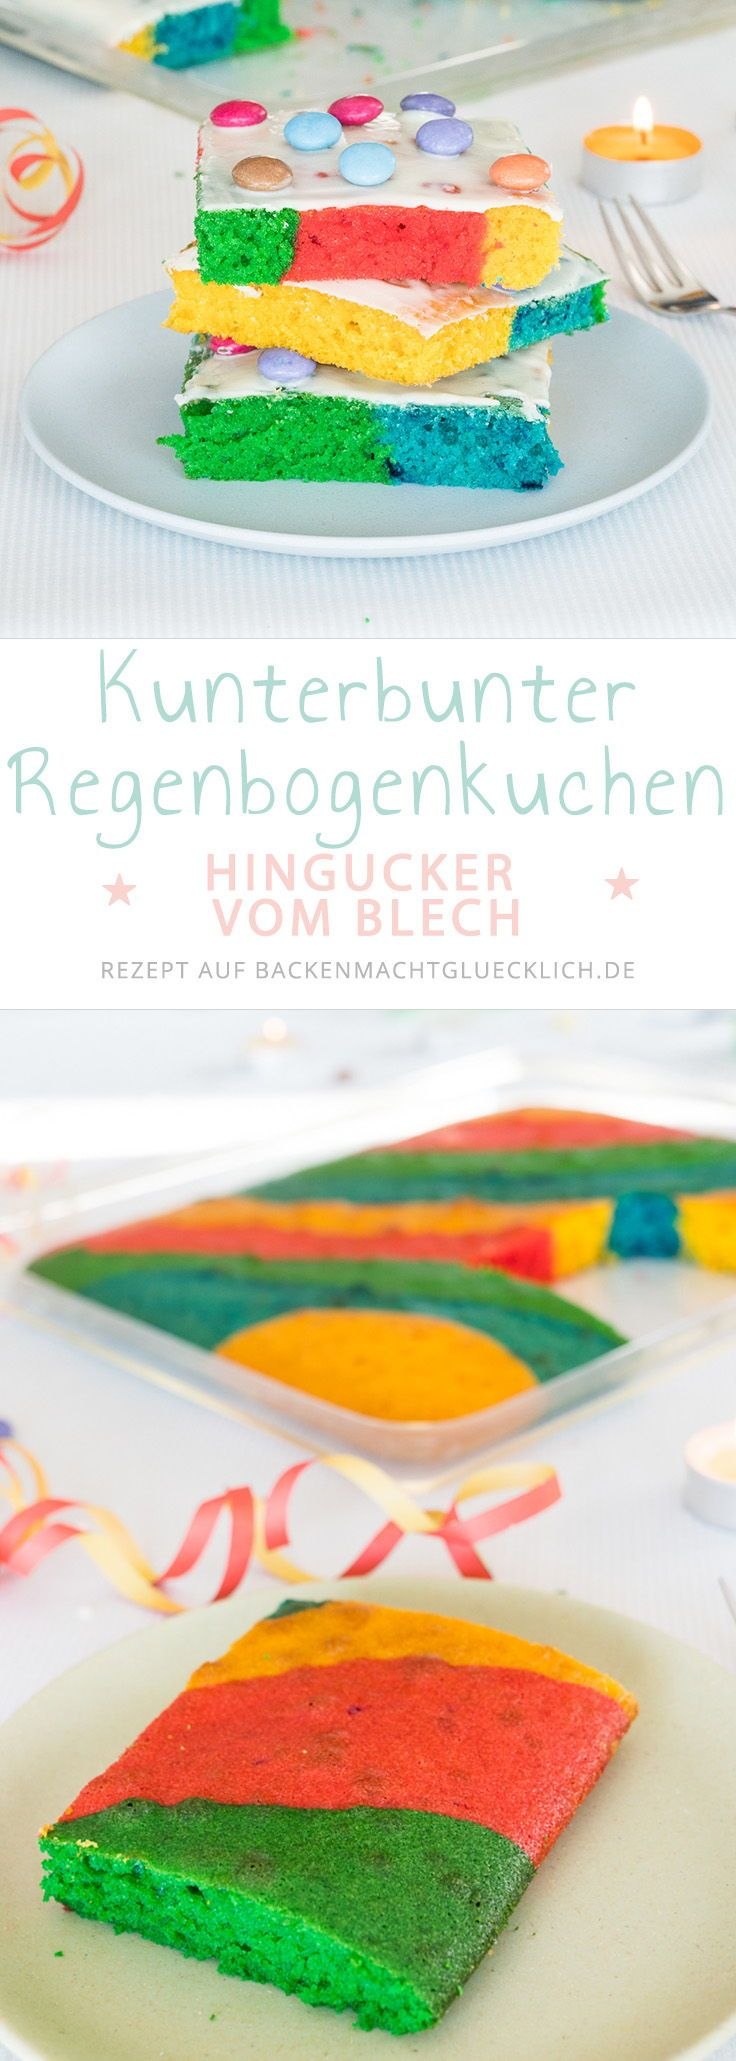 regenbogenkuchen vom blech recipe baking kuchen blechkuchen backen. Black Bedroom Furniture Sets. Home Design Ideas